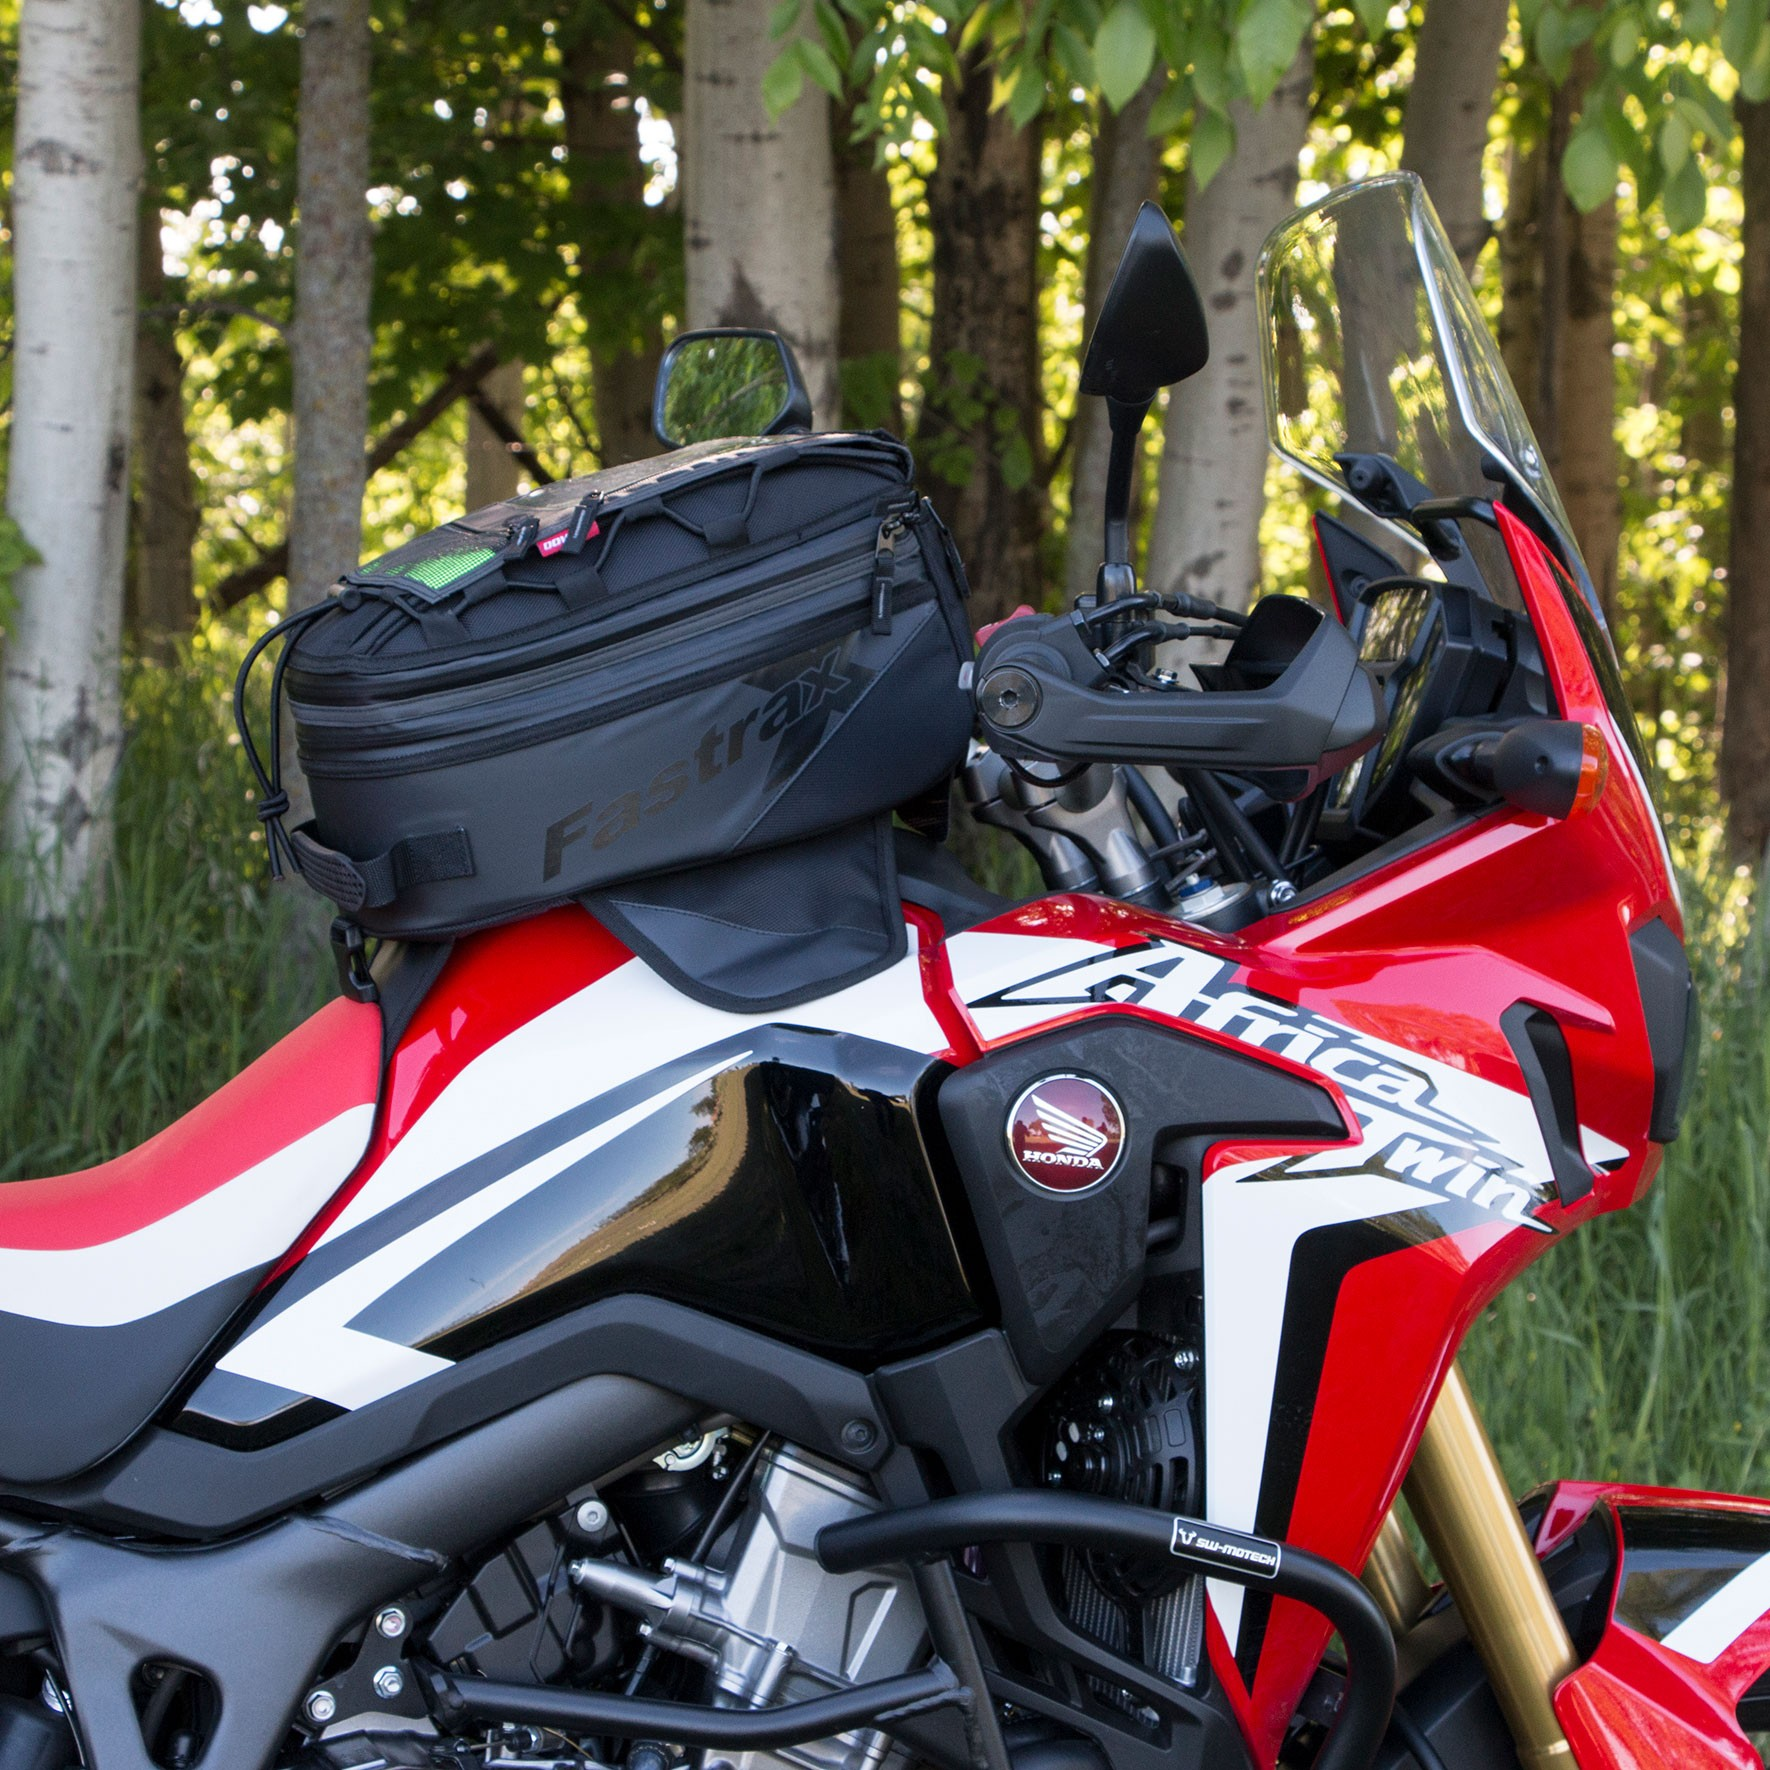 Dowco Fastrax Backroads Tank Bag on a Honda Africa Twin Motorcycle